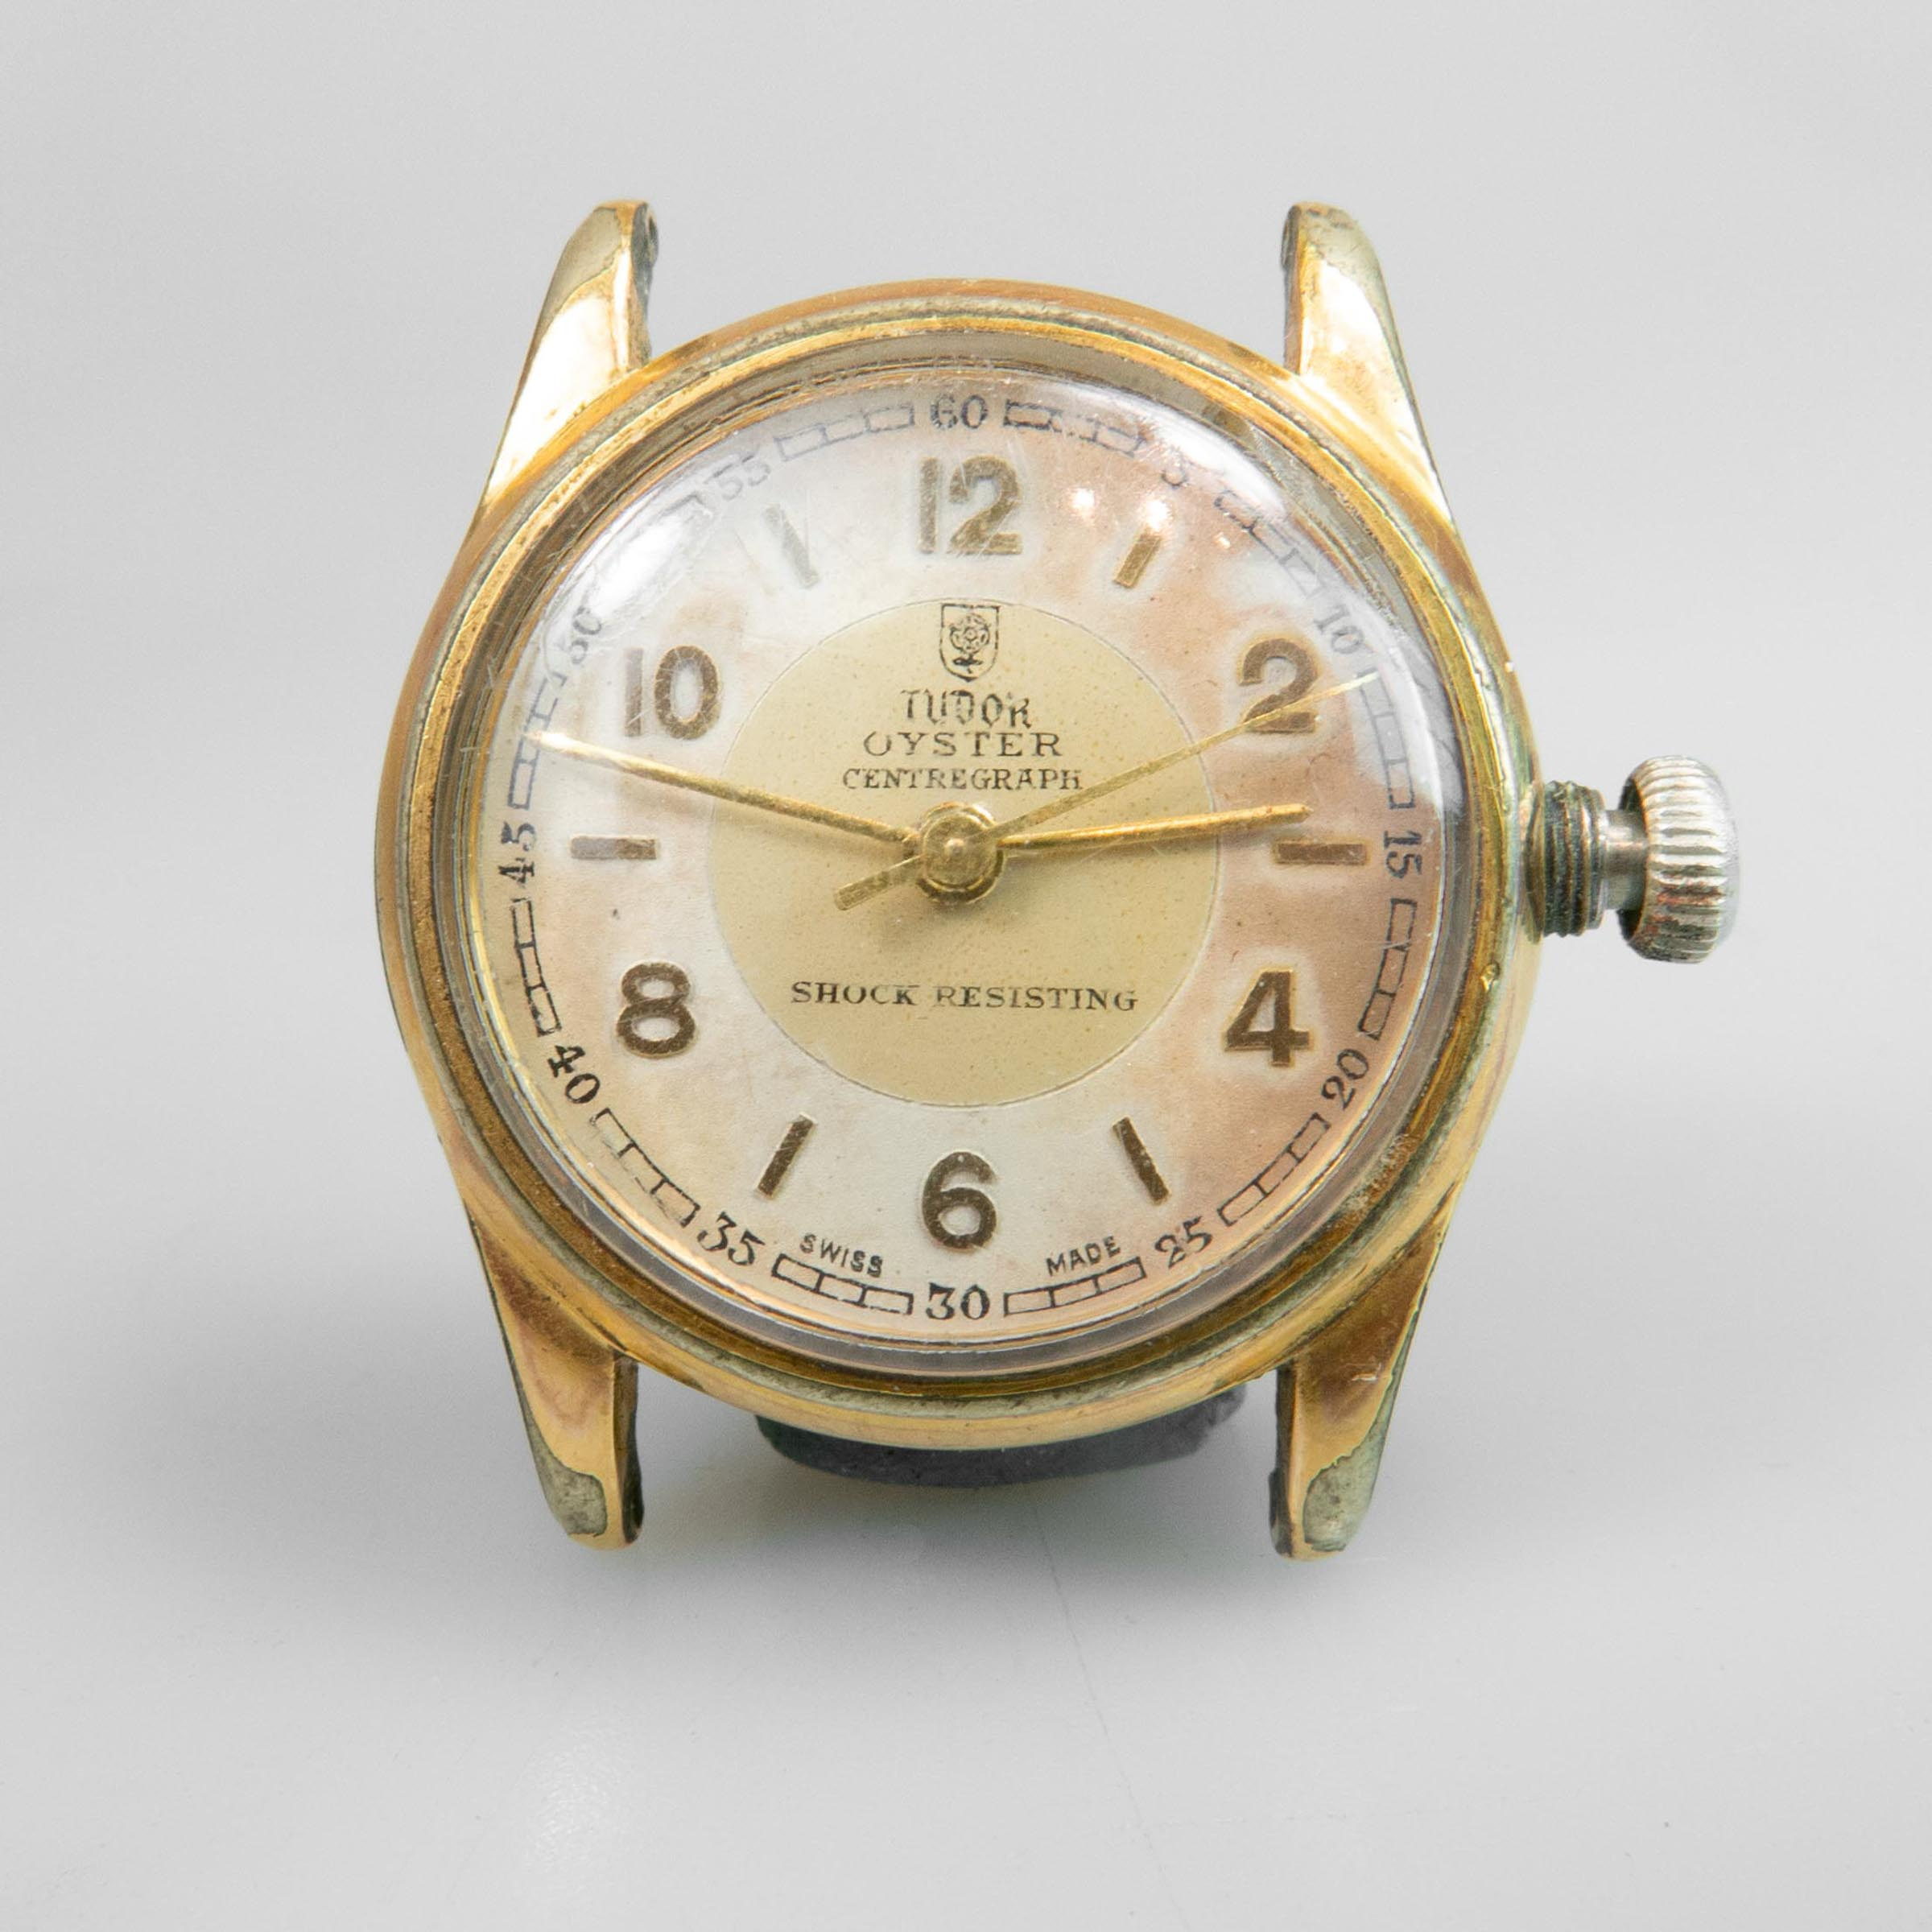 Tudor Oyster 'Centregraph' Wristwatch